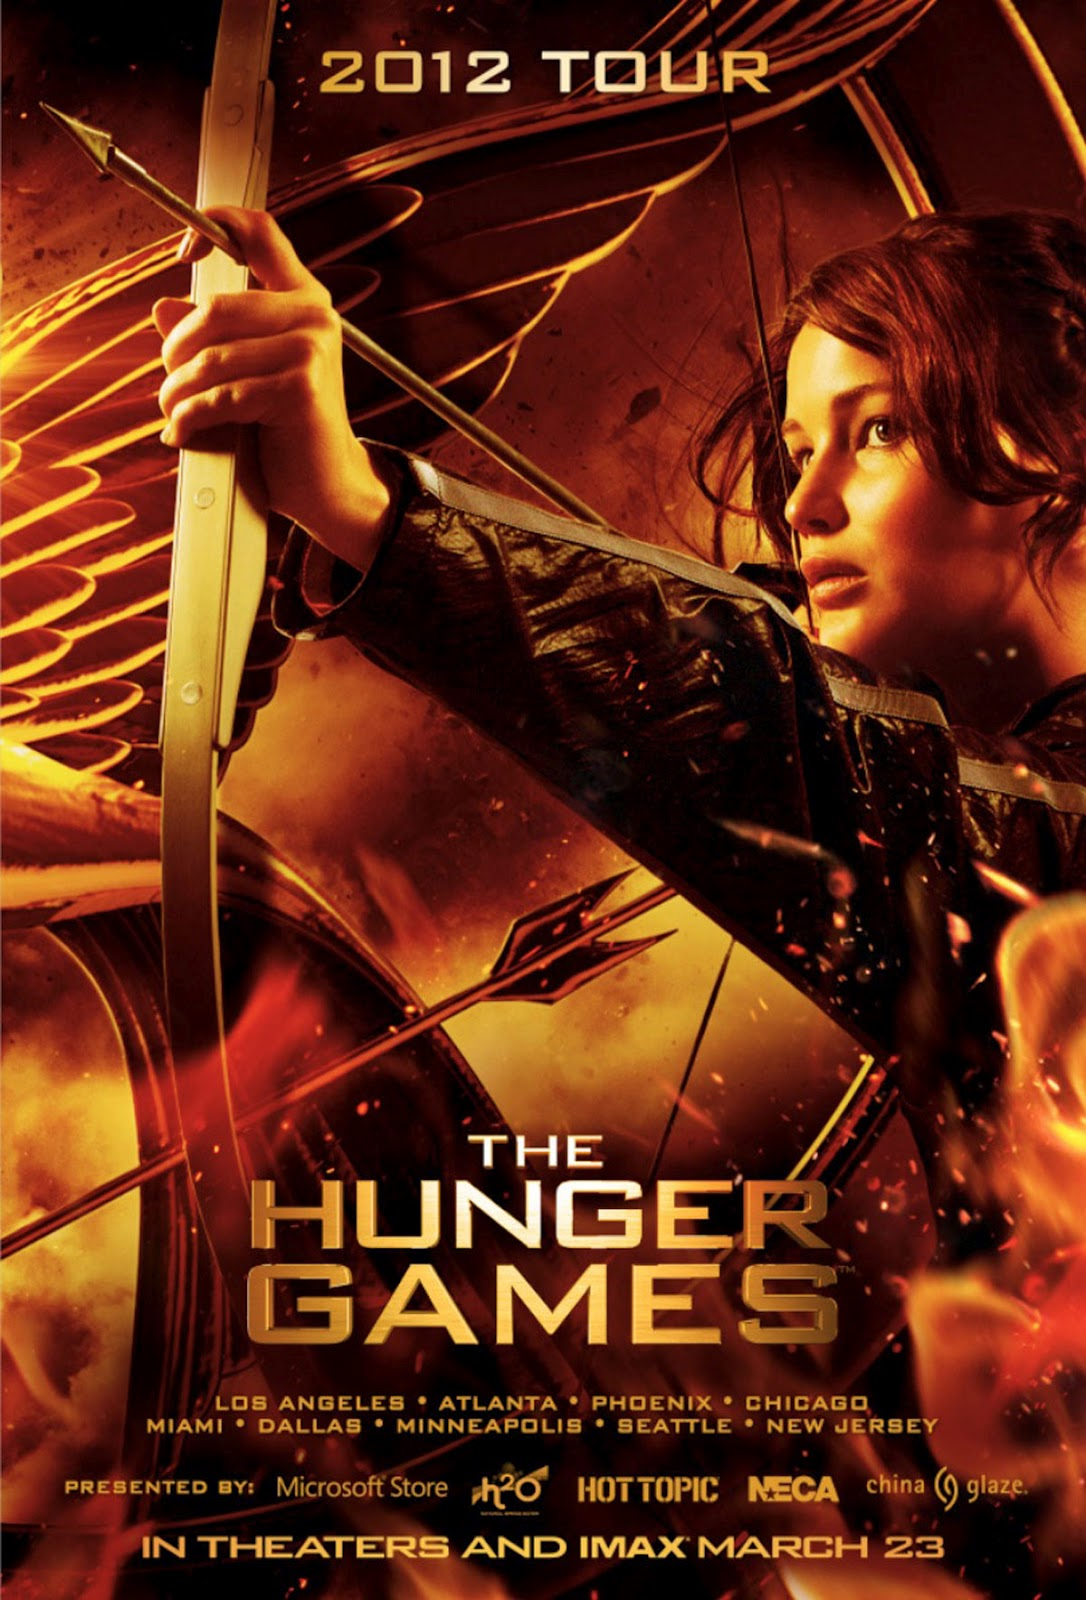 Hunger Games Official Movie Posters/Covers — See Them Here ...